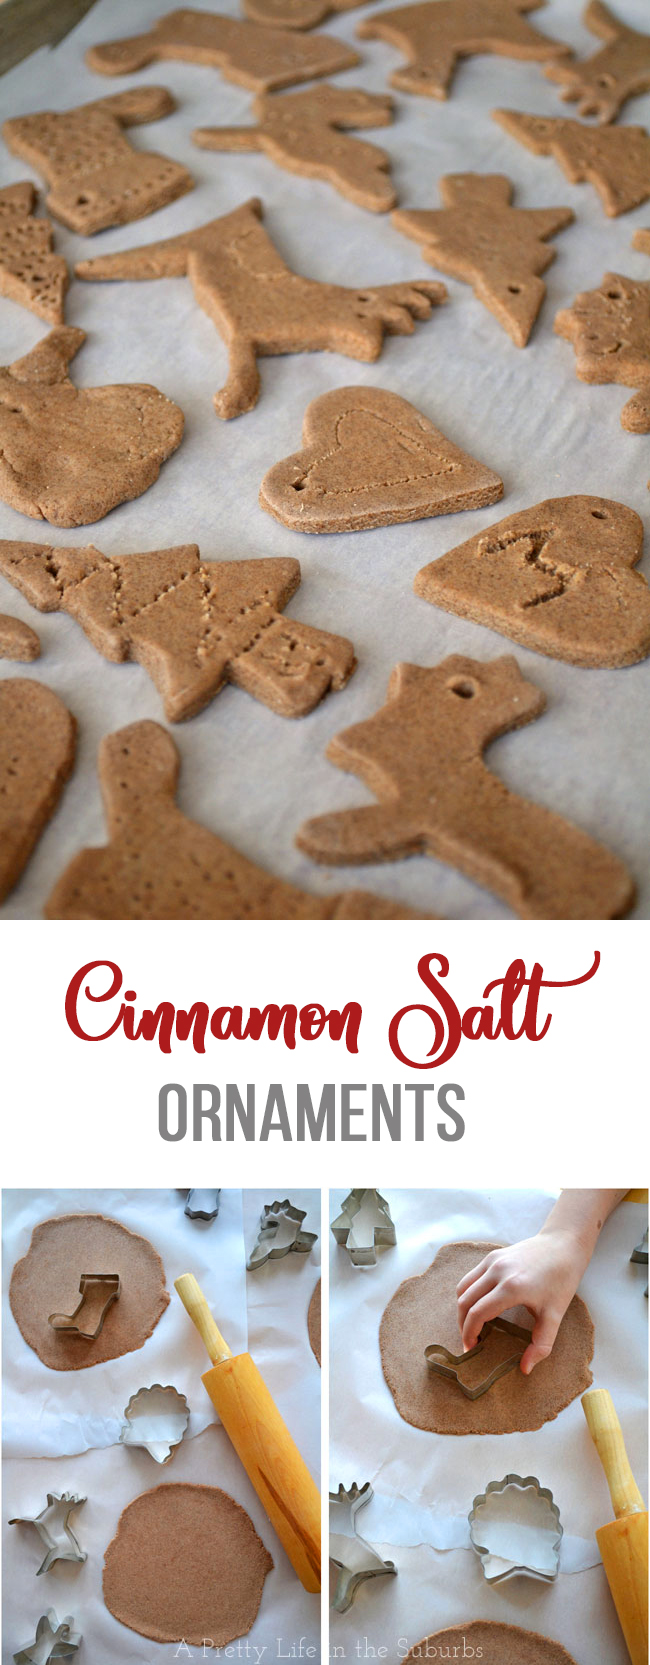 Cinnamon Salt Ornaments Great For Last Minute Homemade Gifts For The Kids To Make For T Salt Dough Christmas Ornaments Cinnamon Ornament Recipe Food Ornaments